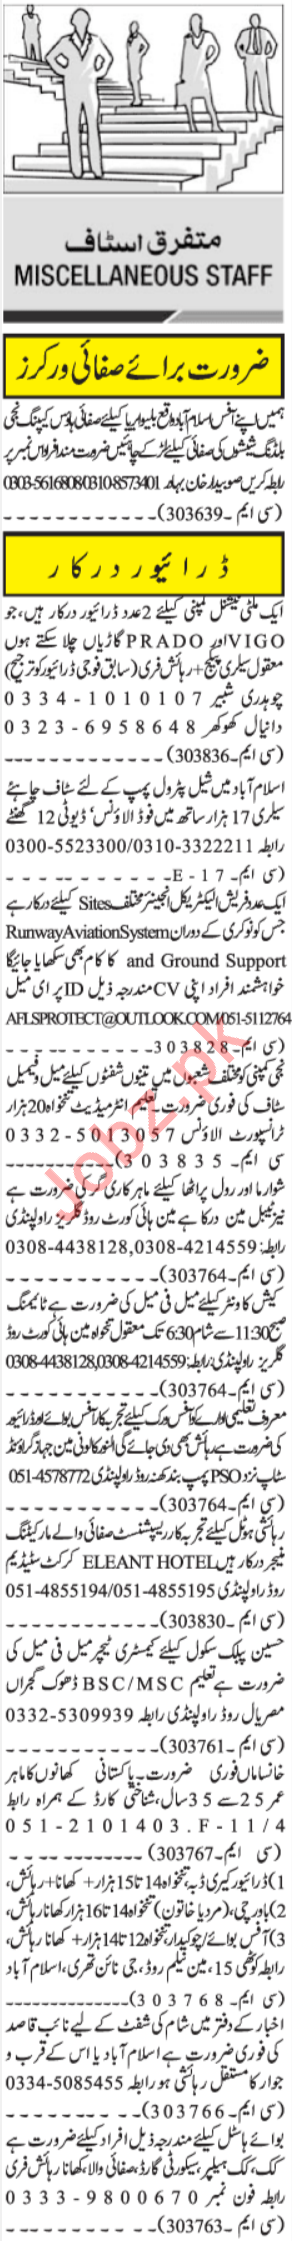 Daily Jang Newspaper Classified Ads In Islamabad 2019 Job